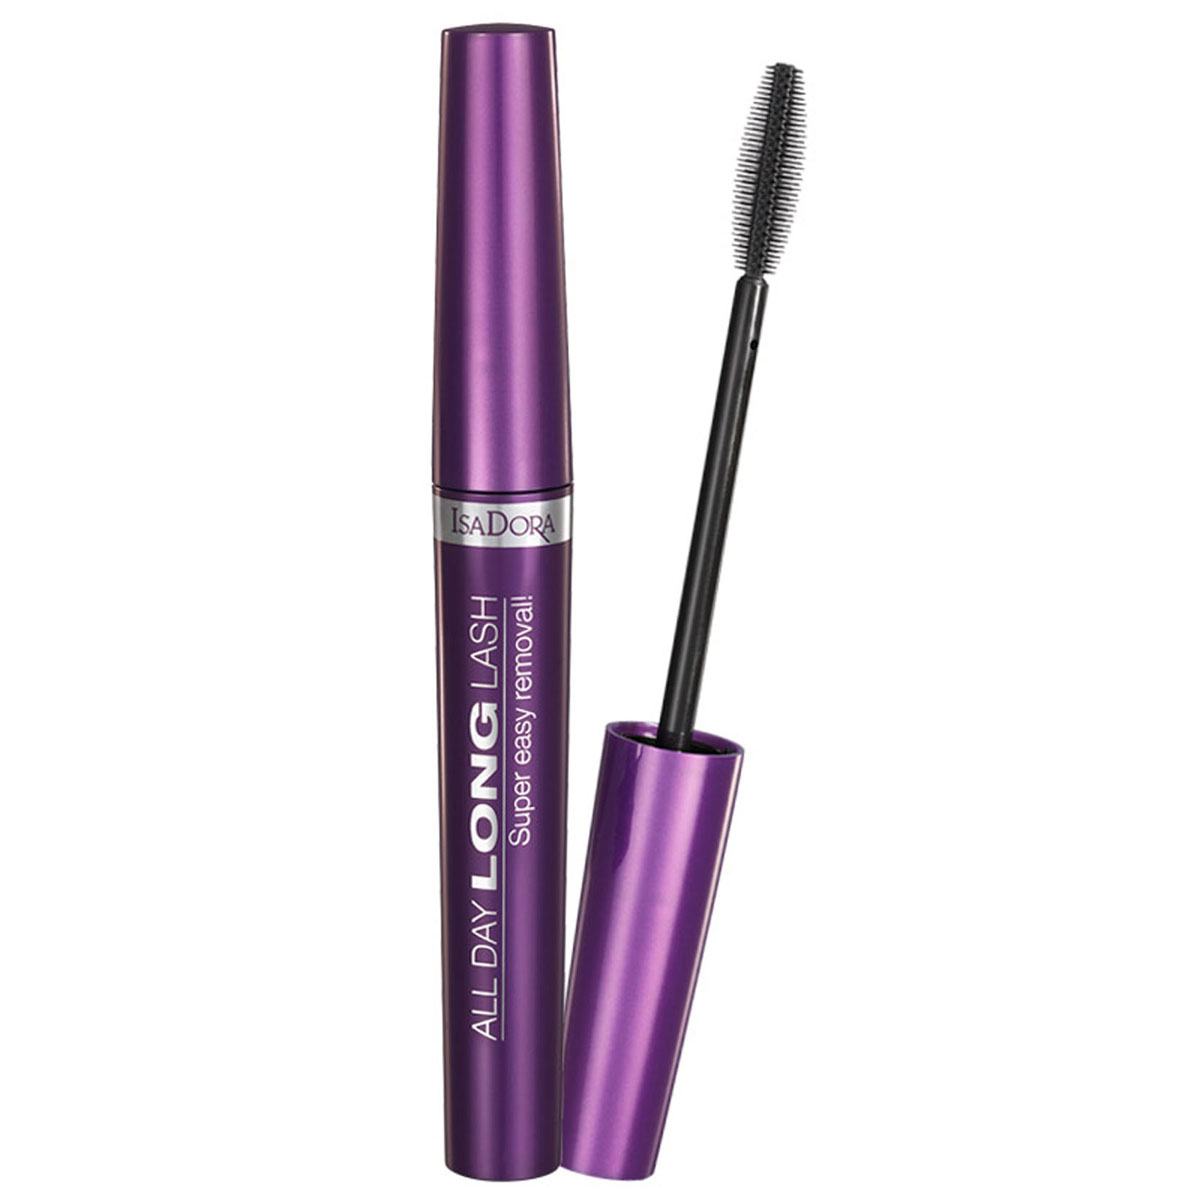 isa dora тушь для ресниц all day long lash тон 23 black brown 8 мл Isa Dora Тушь для ресниц All Day Long Lash, тон №20 Black, 8 мл